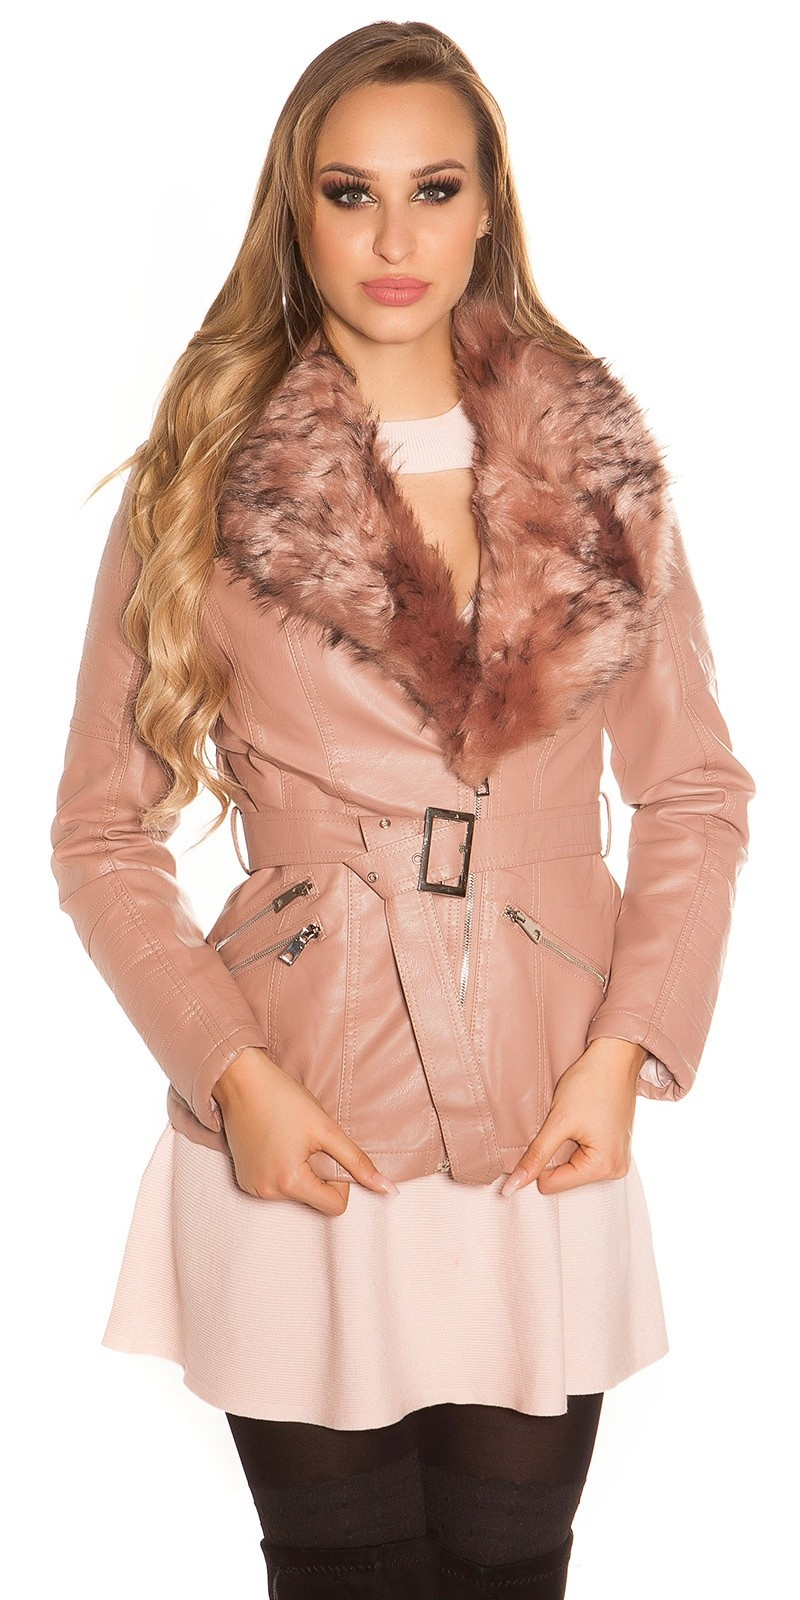 Trendy leather look jacket lined with fake fur Antiquepink